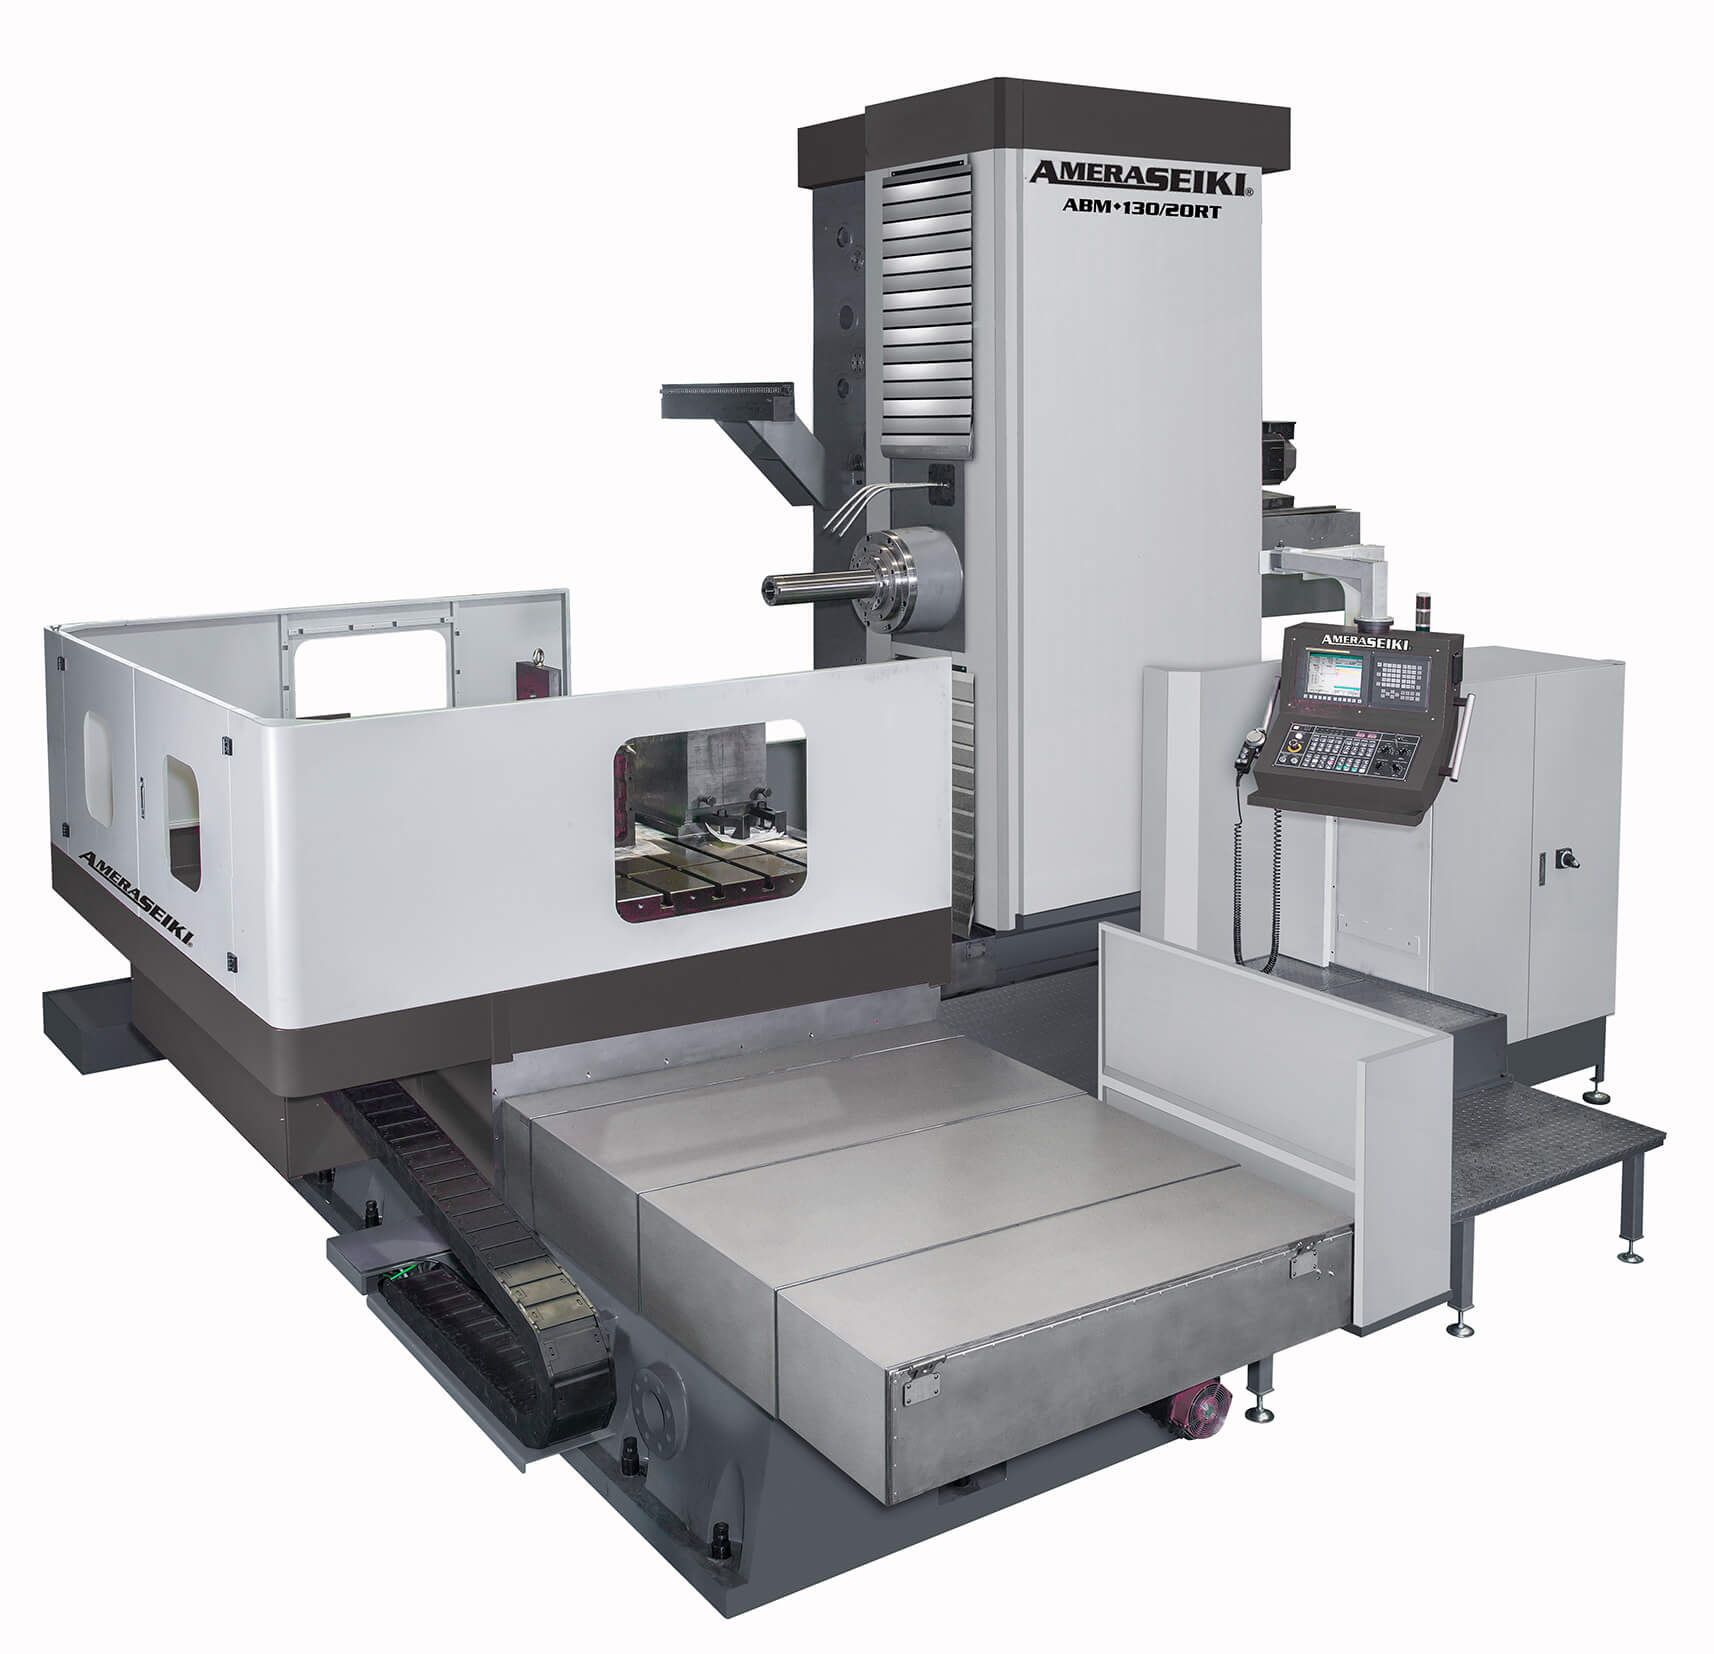 ABM series horizonatl boring machines